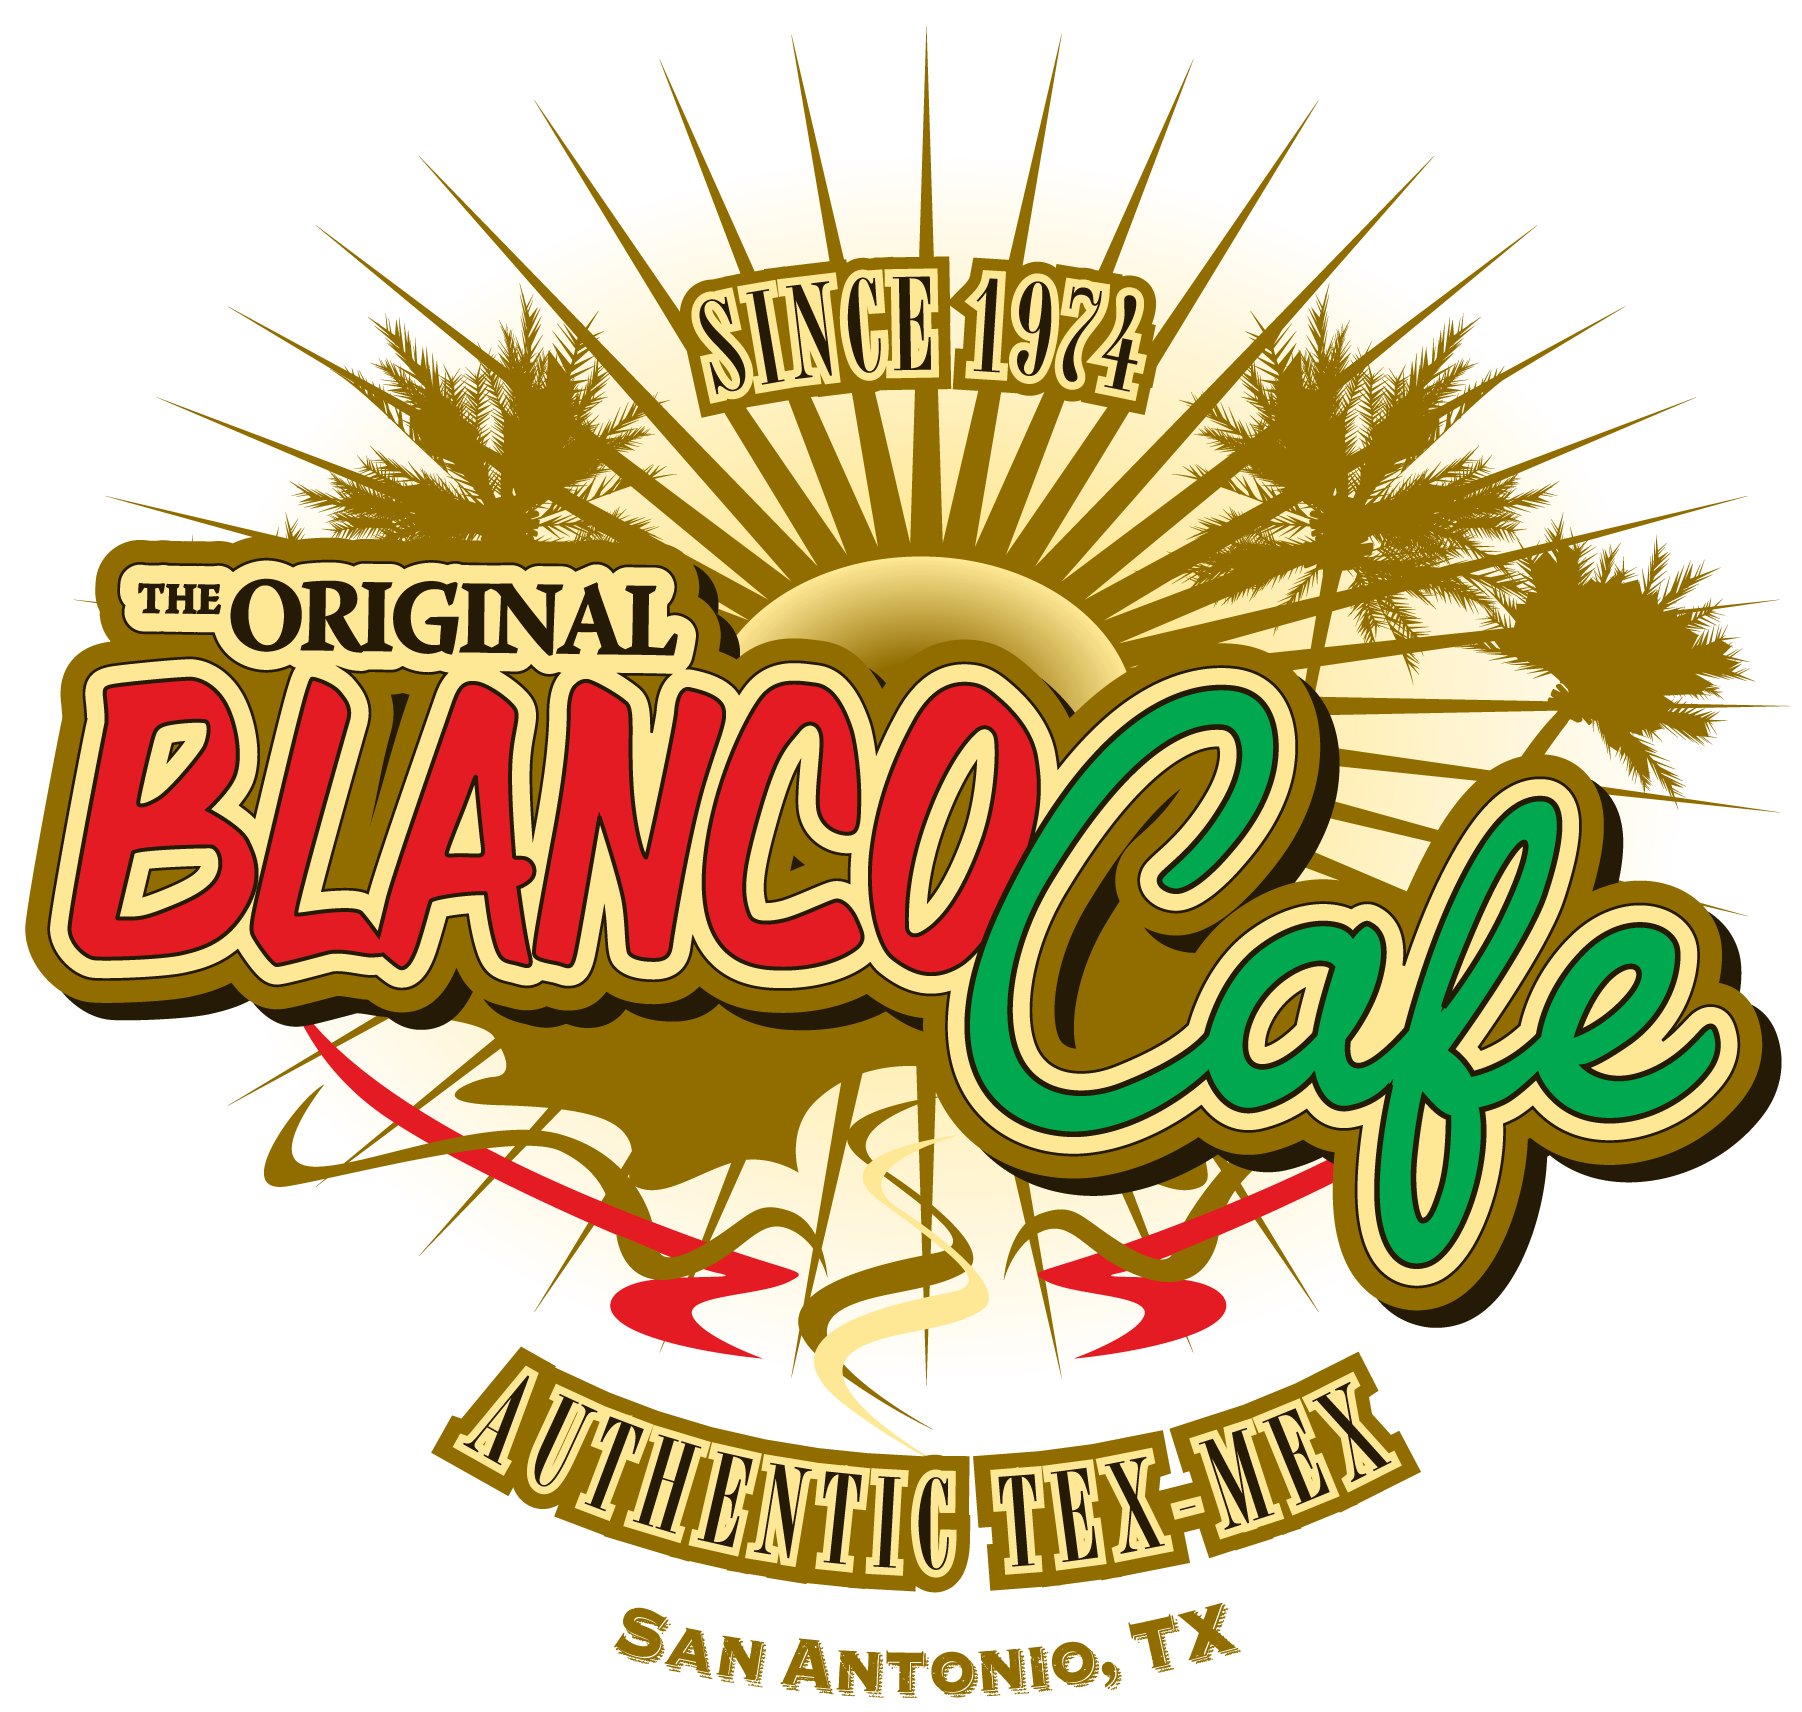 Fish tacos clipart clipart freeuse library The Original Blanco Cafe - Home clipart freeuse library